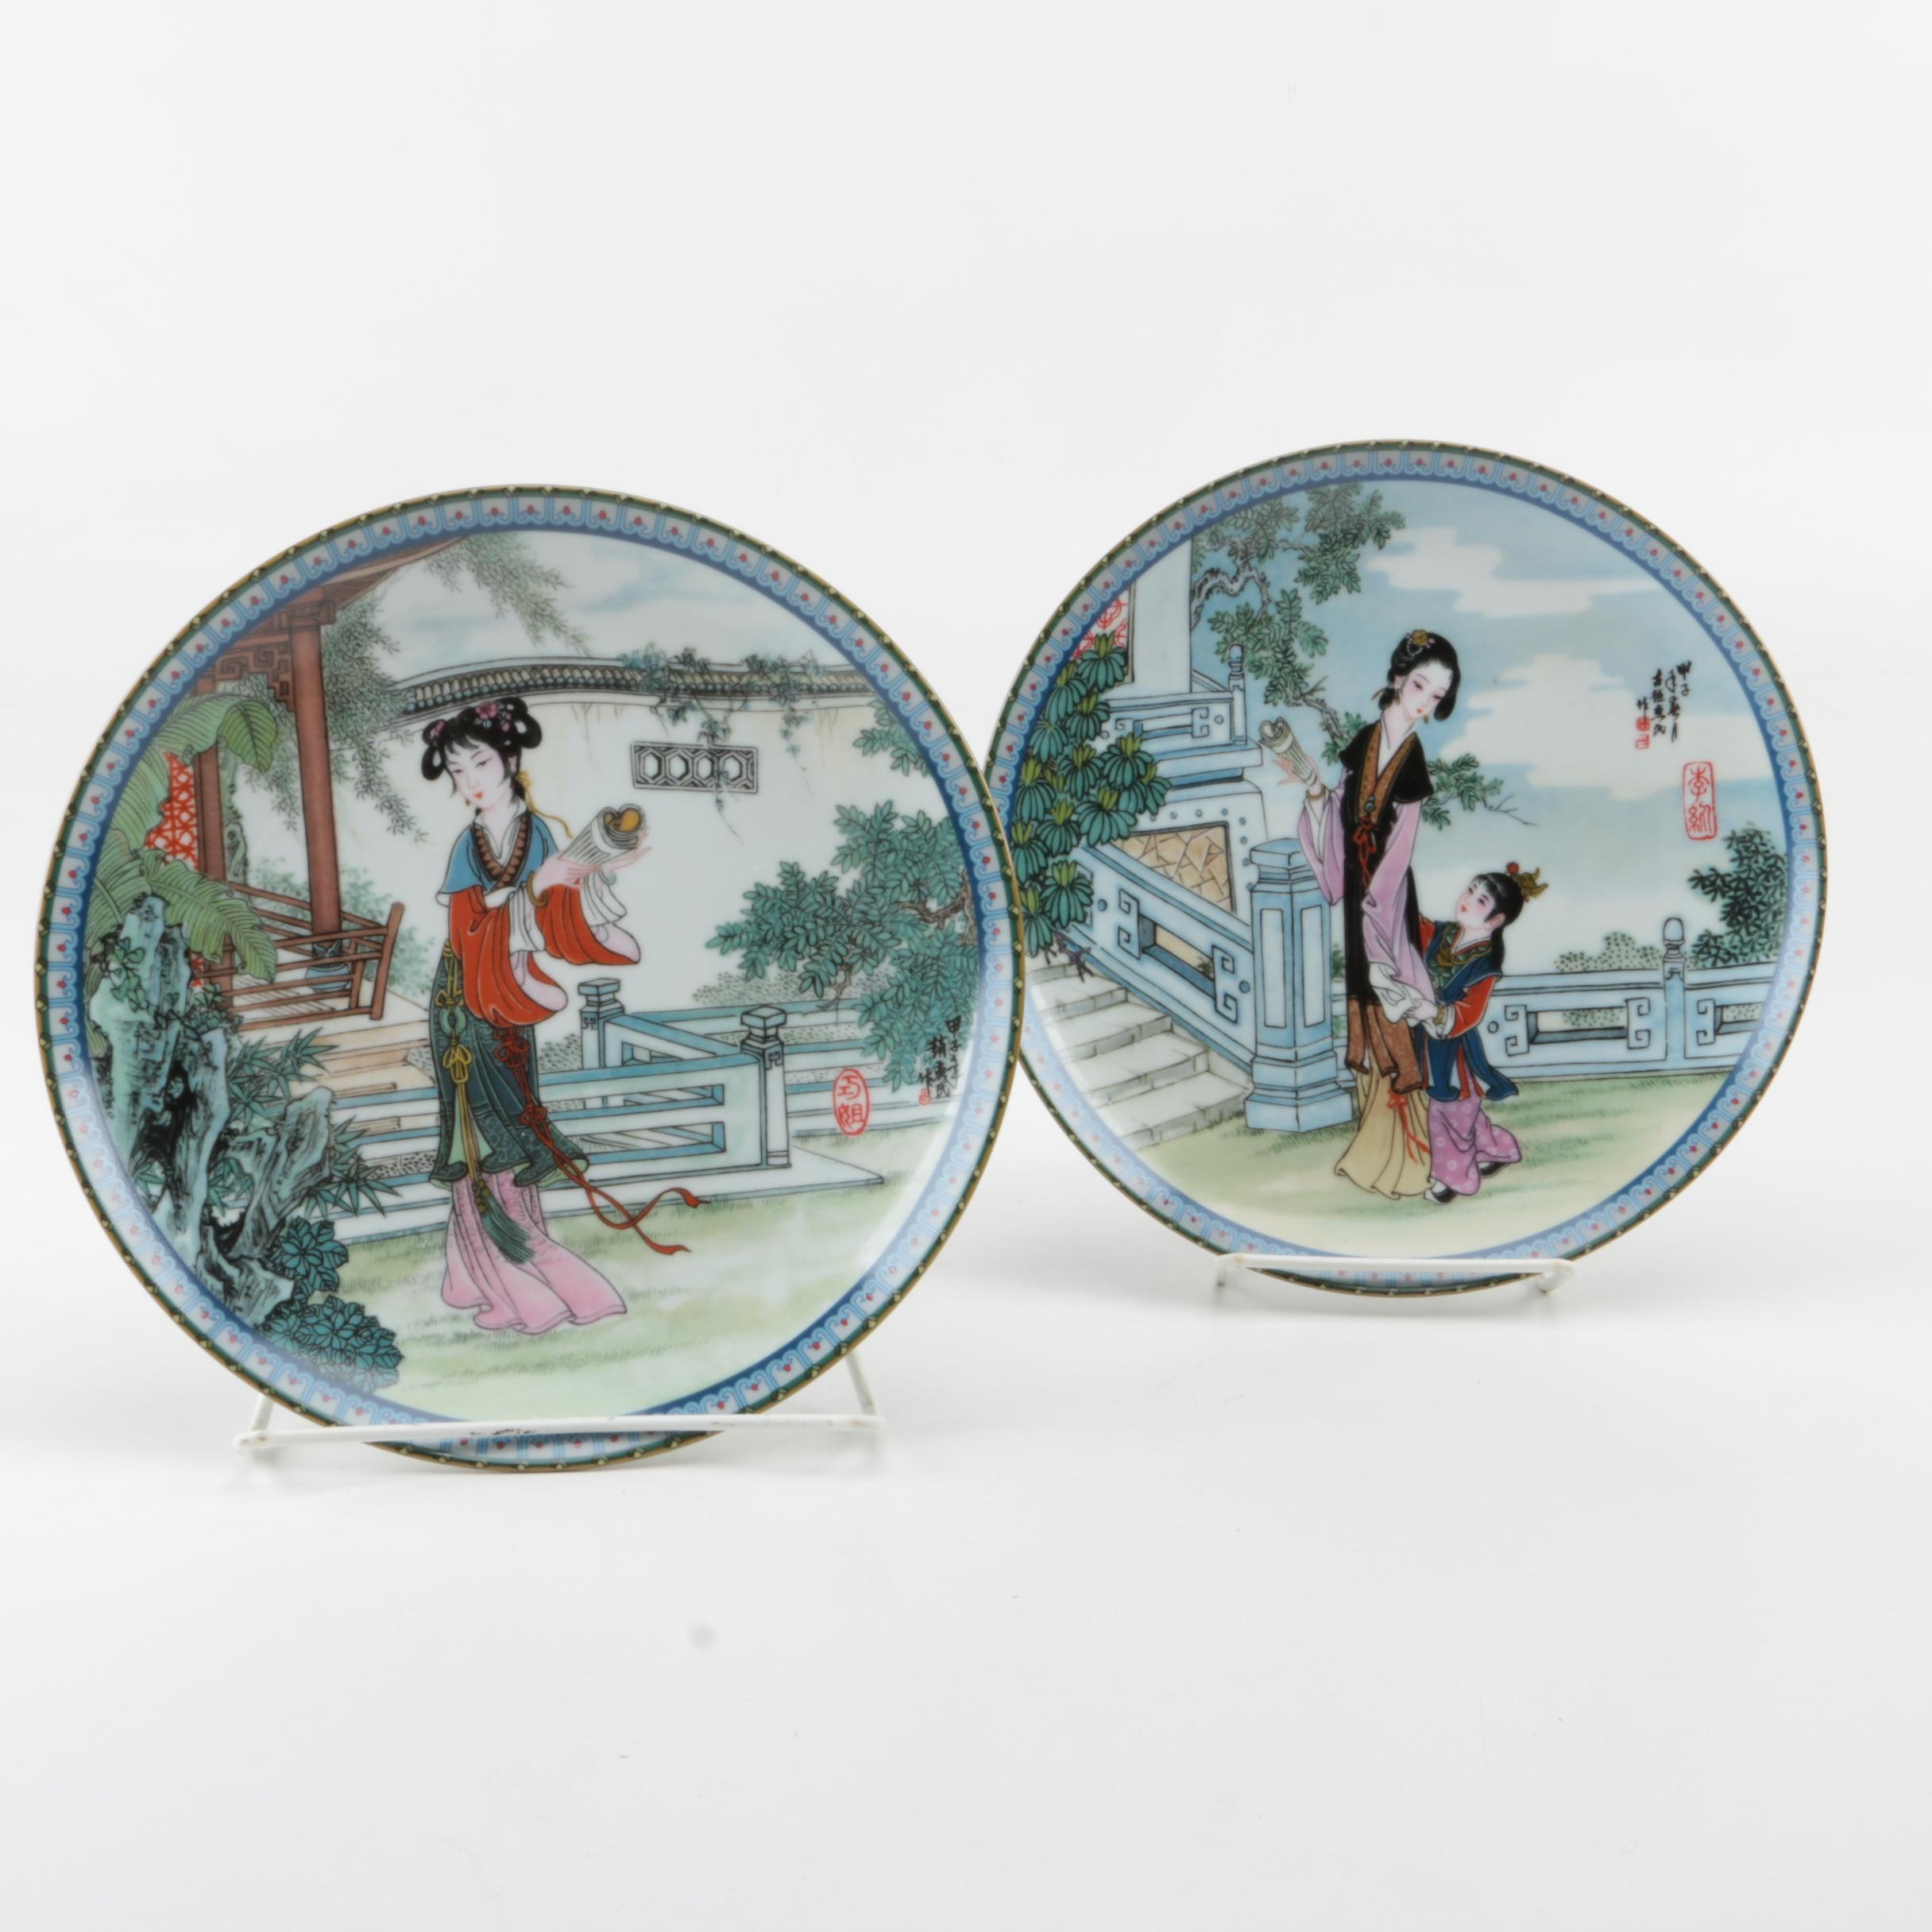 Chinese Imperial Jingdezhen Collectible Porcelain Plates